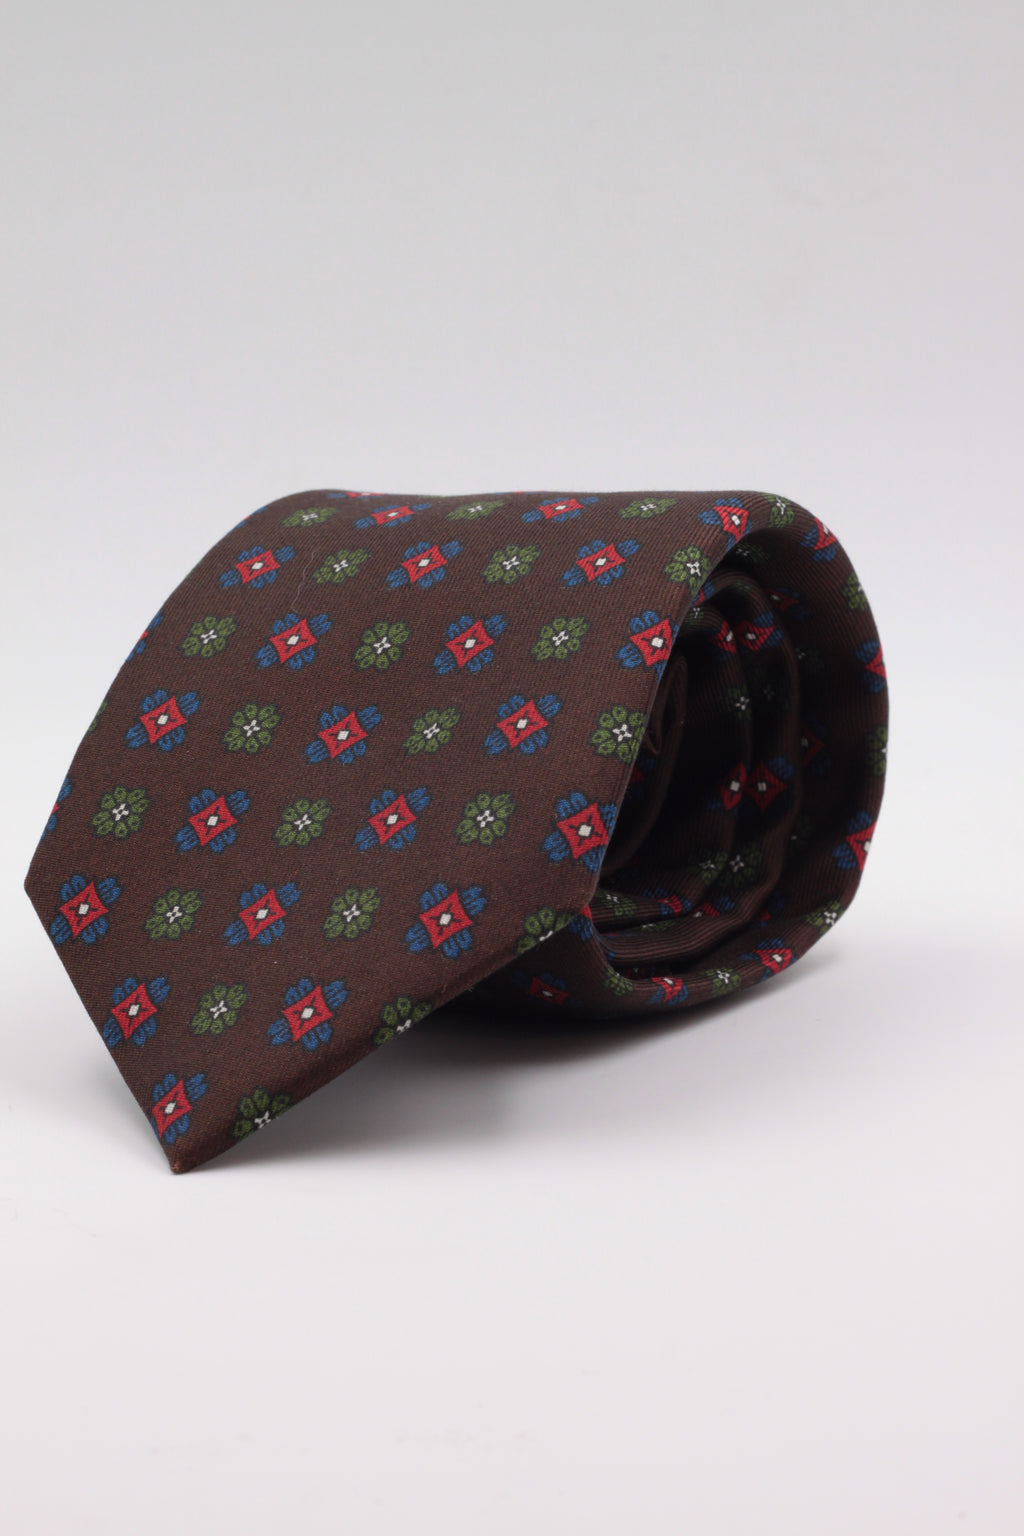 Brown, green, red and royal blue motif tie